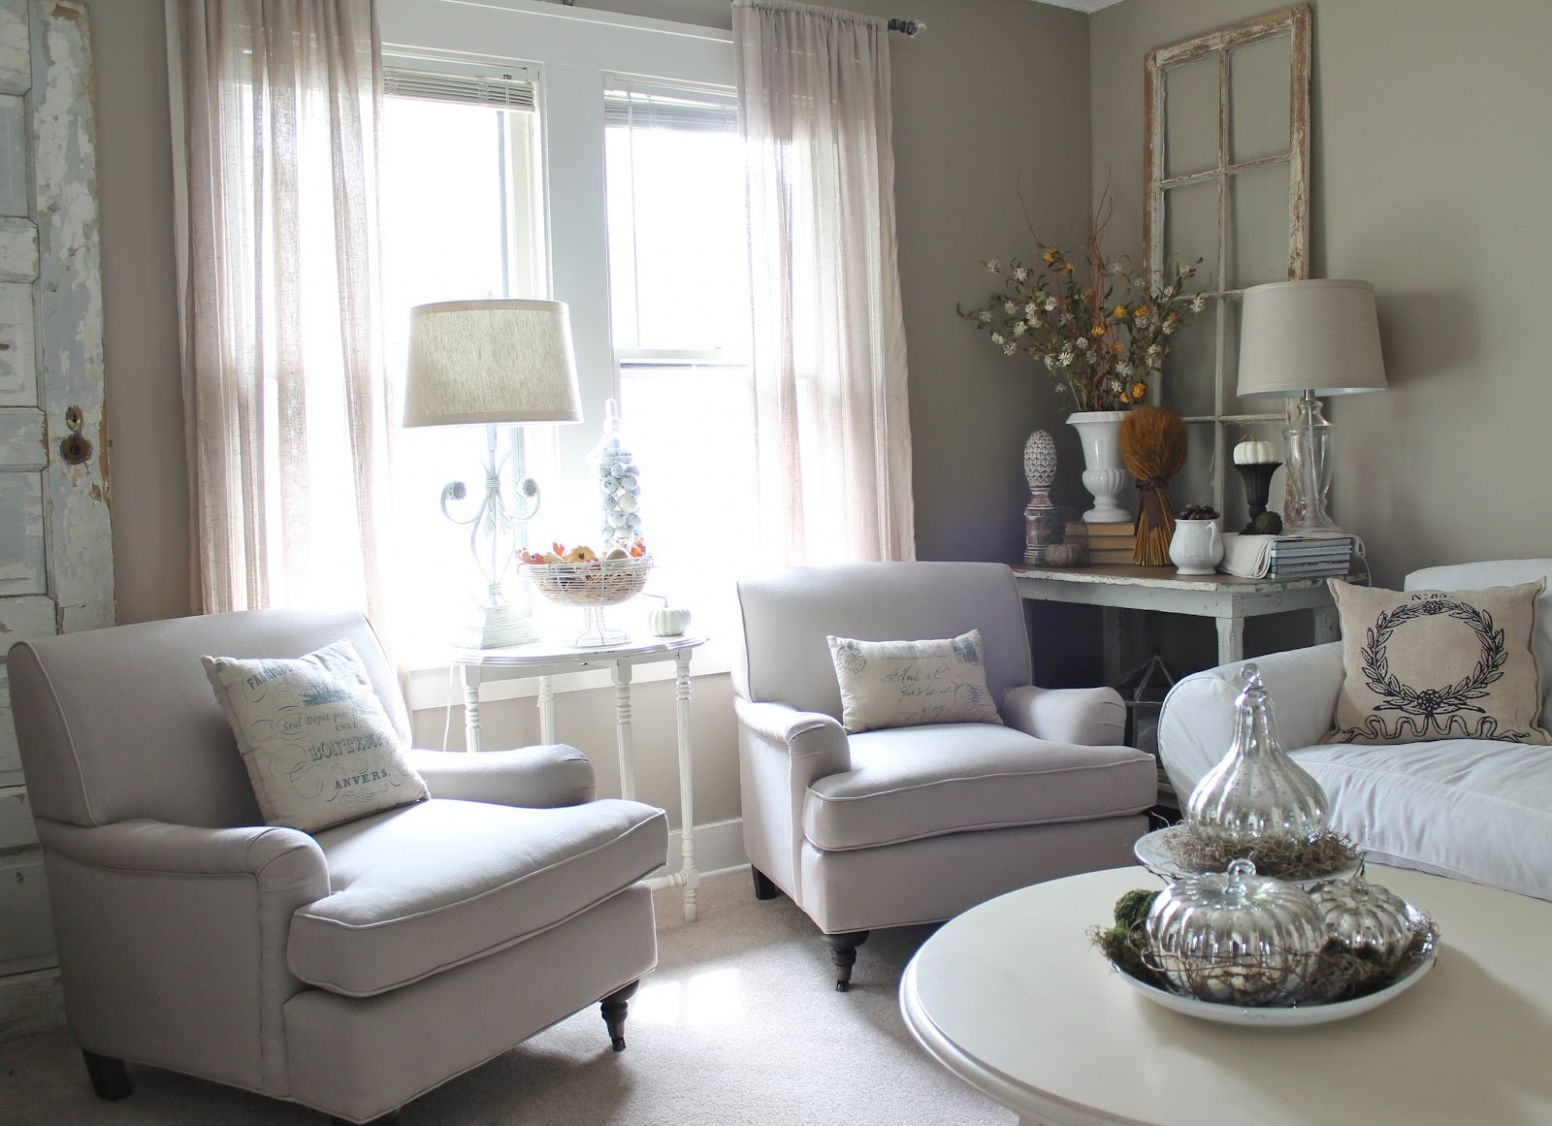 12th and White: New Chairs for the Living Room - living room ideas with just chairs